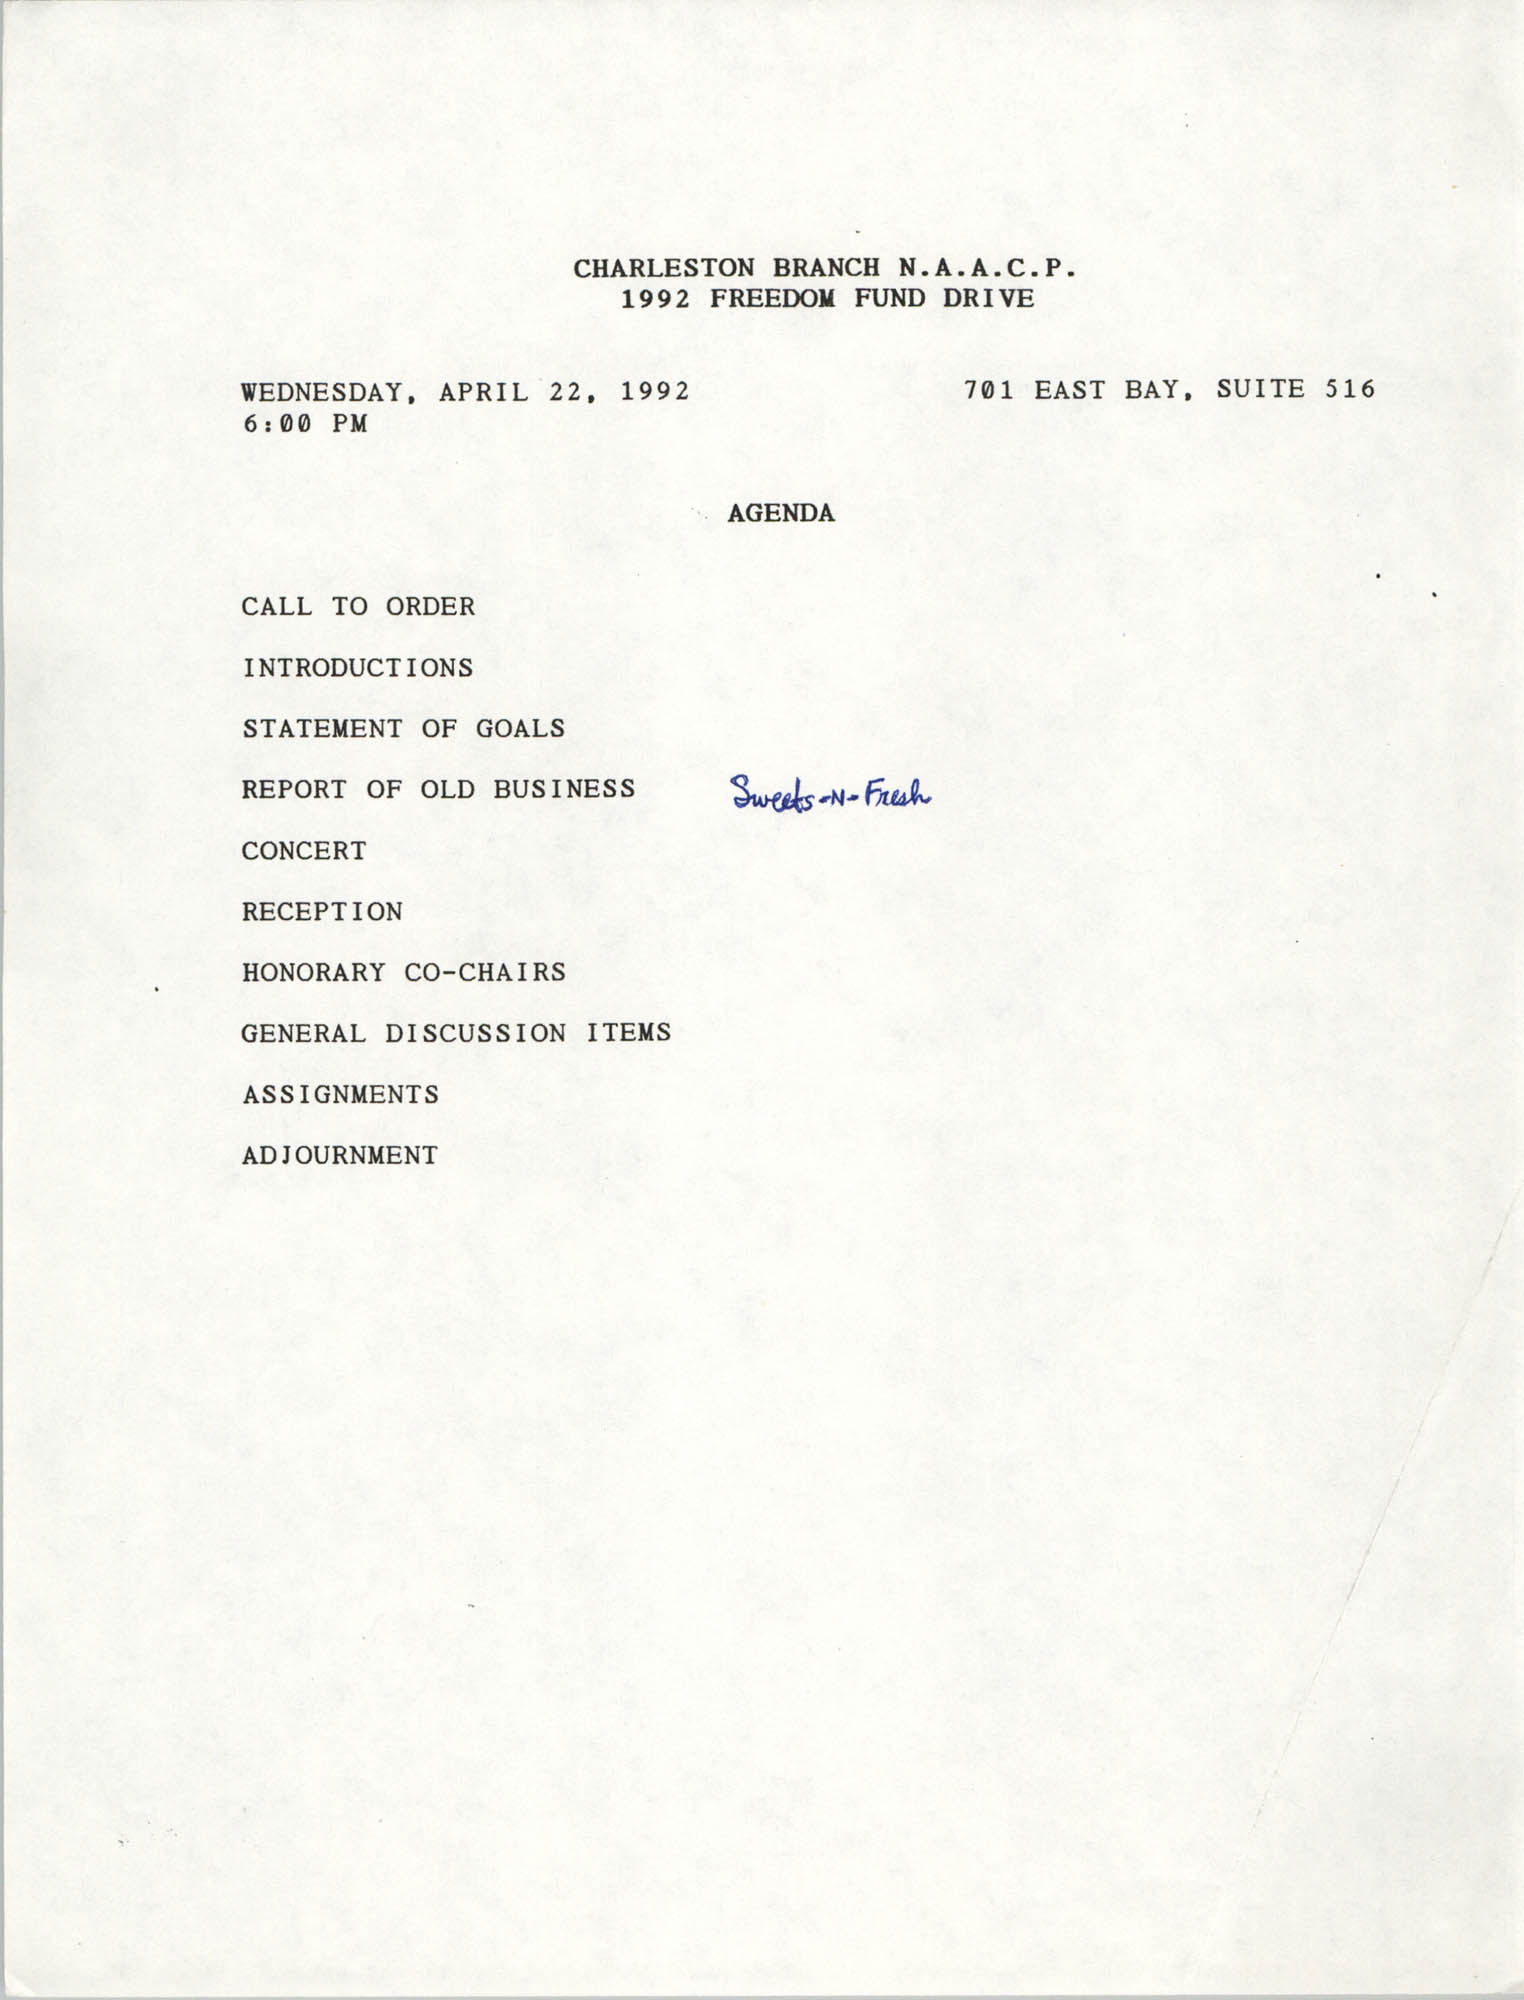 Agenda, Freedom Fund Drive, National Association for the Advancement of Colored People, April 22, 1992